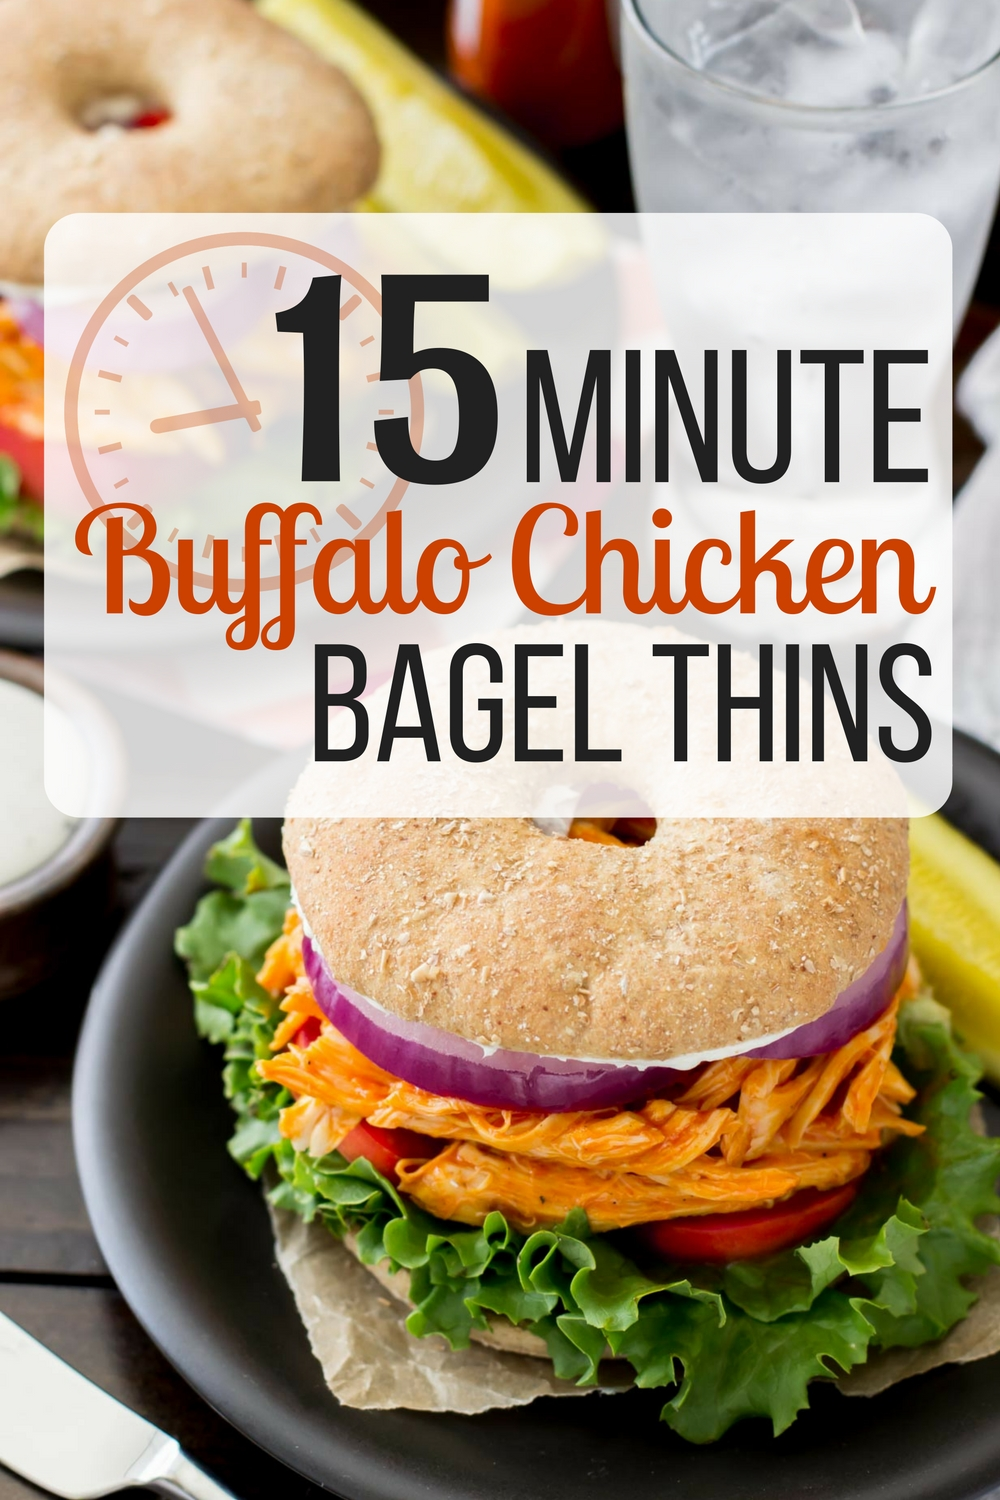 These were amazing! Super easy dinner plus they were cheap. Who doesn't love Buffalo Chicken?!?